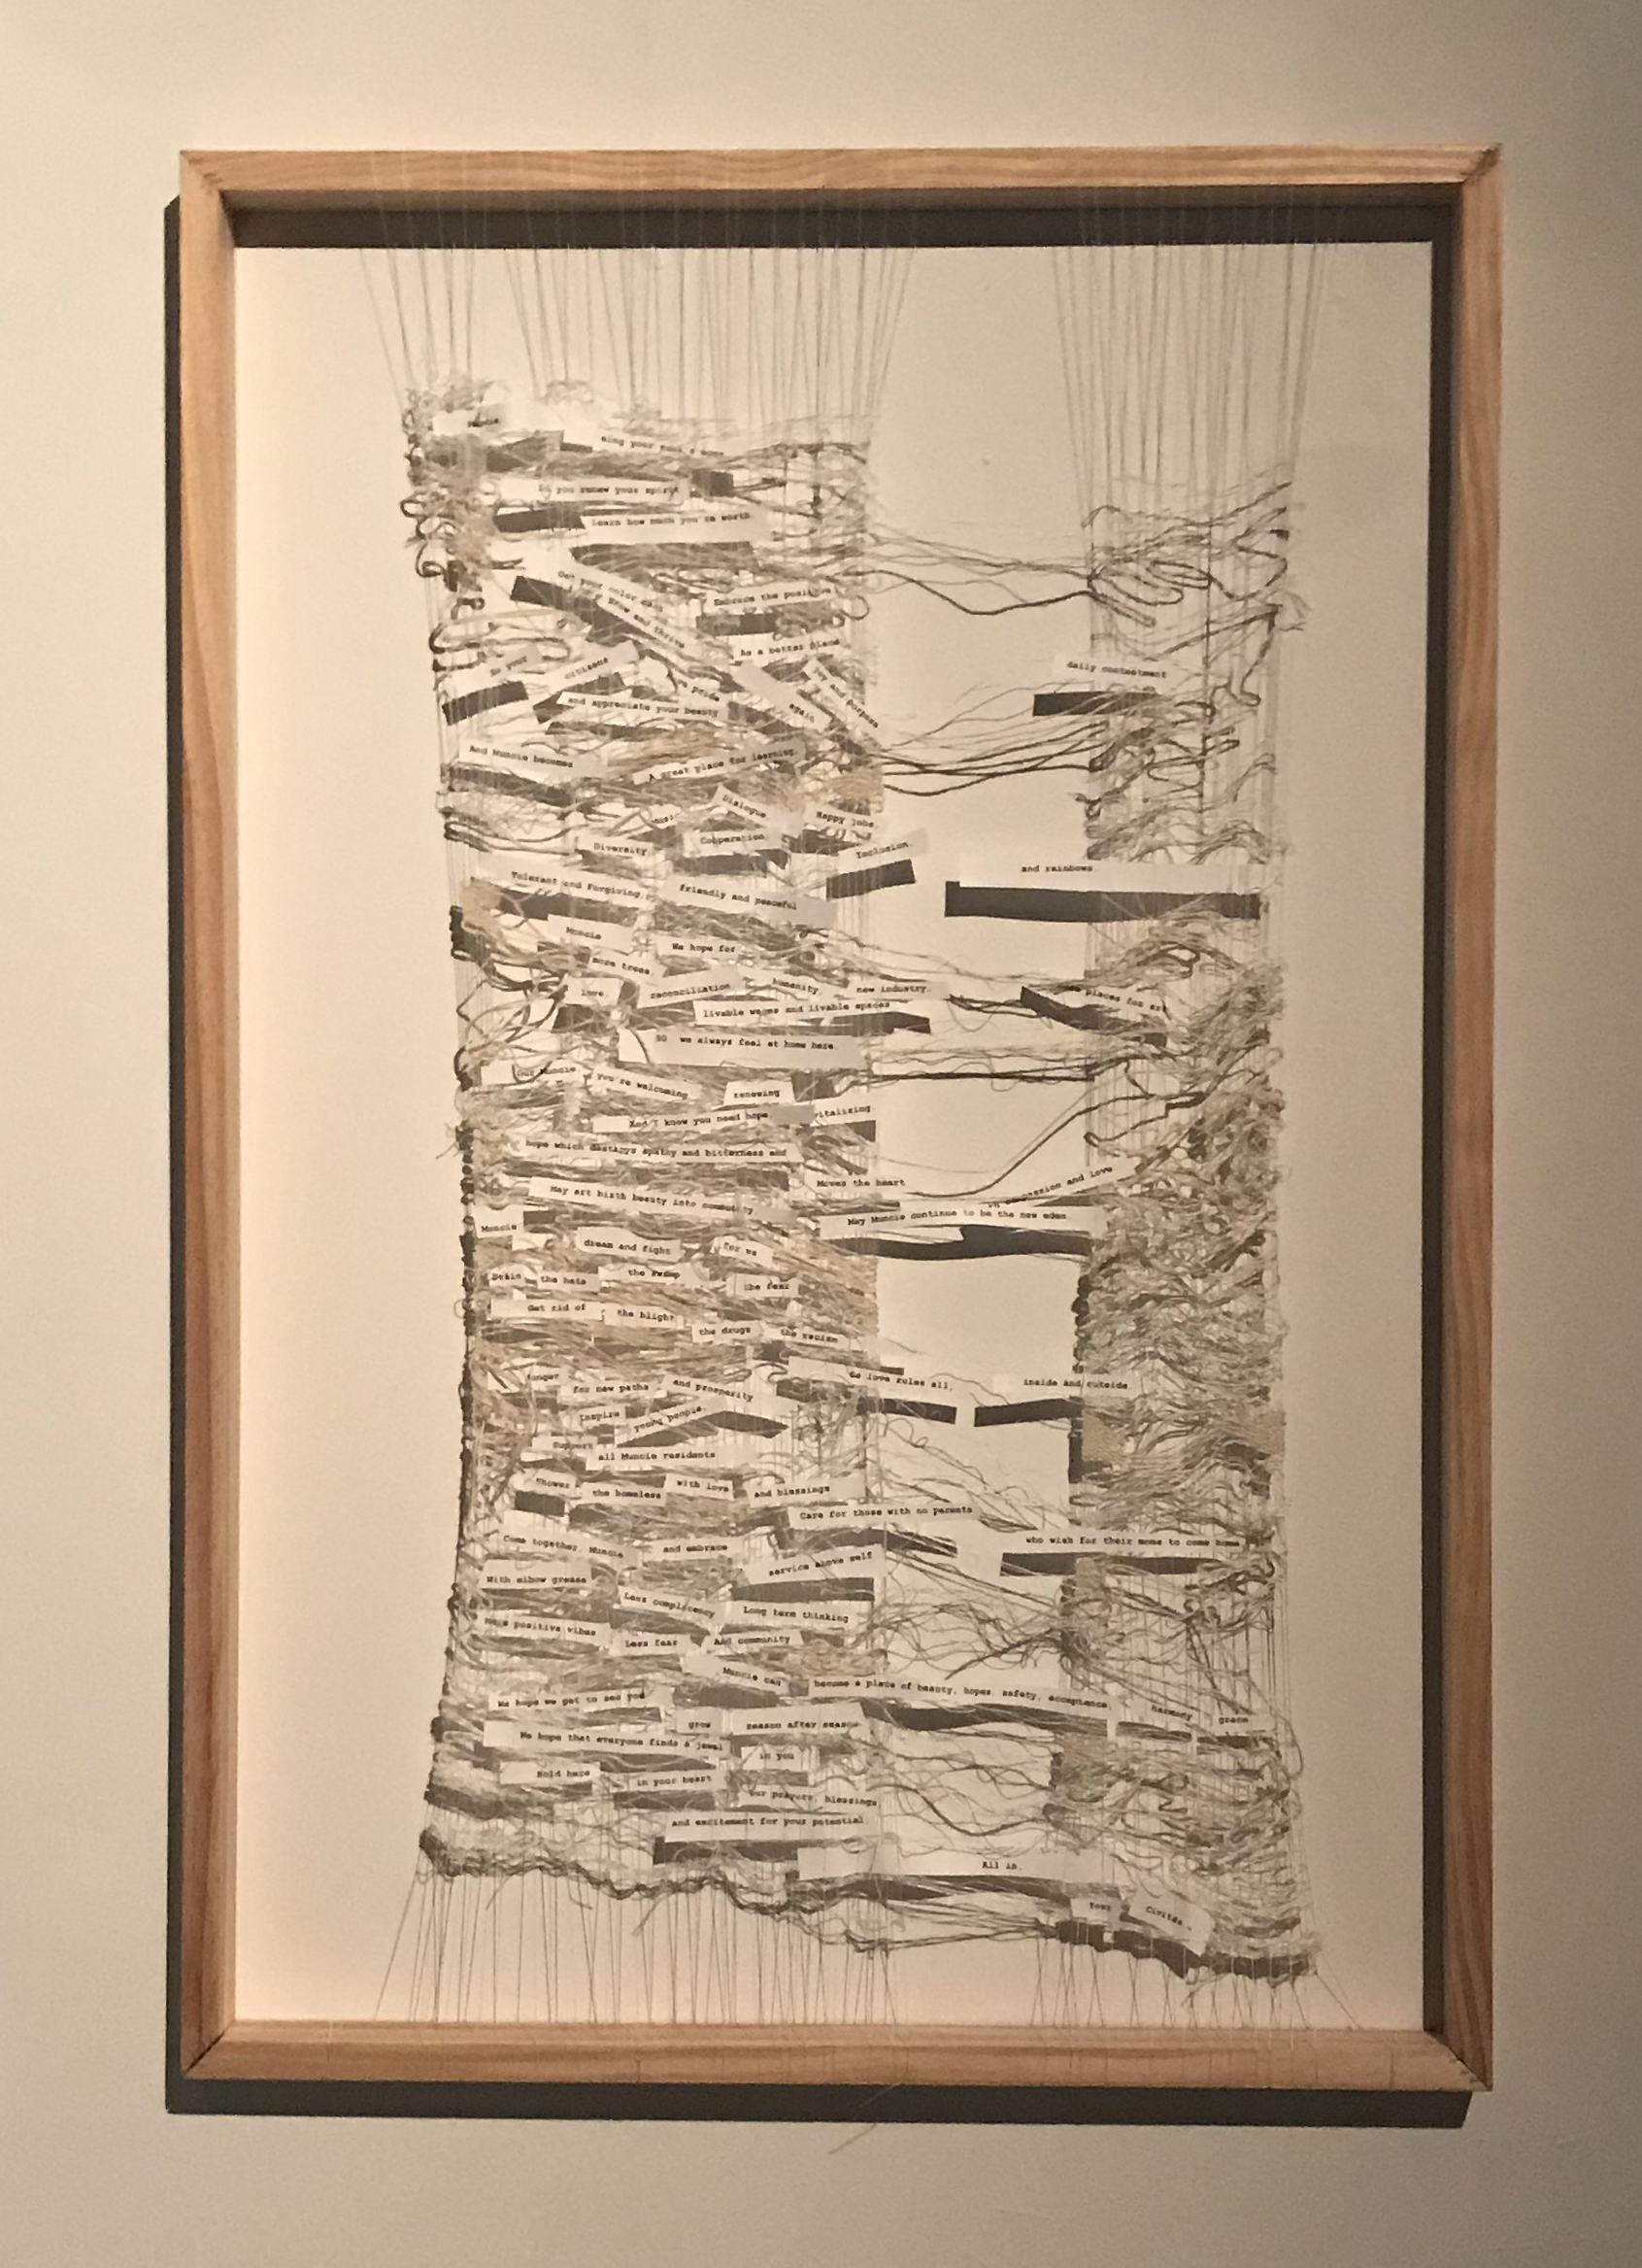 Woven Hopes, A Song to Muncie  Wood, Silk, Stainless Steel, Hemp, Paper, Ink  2018